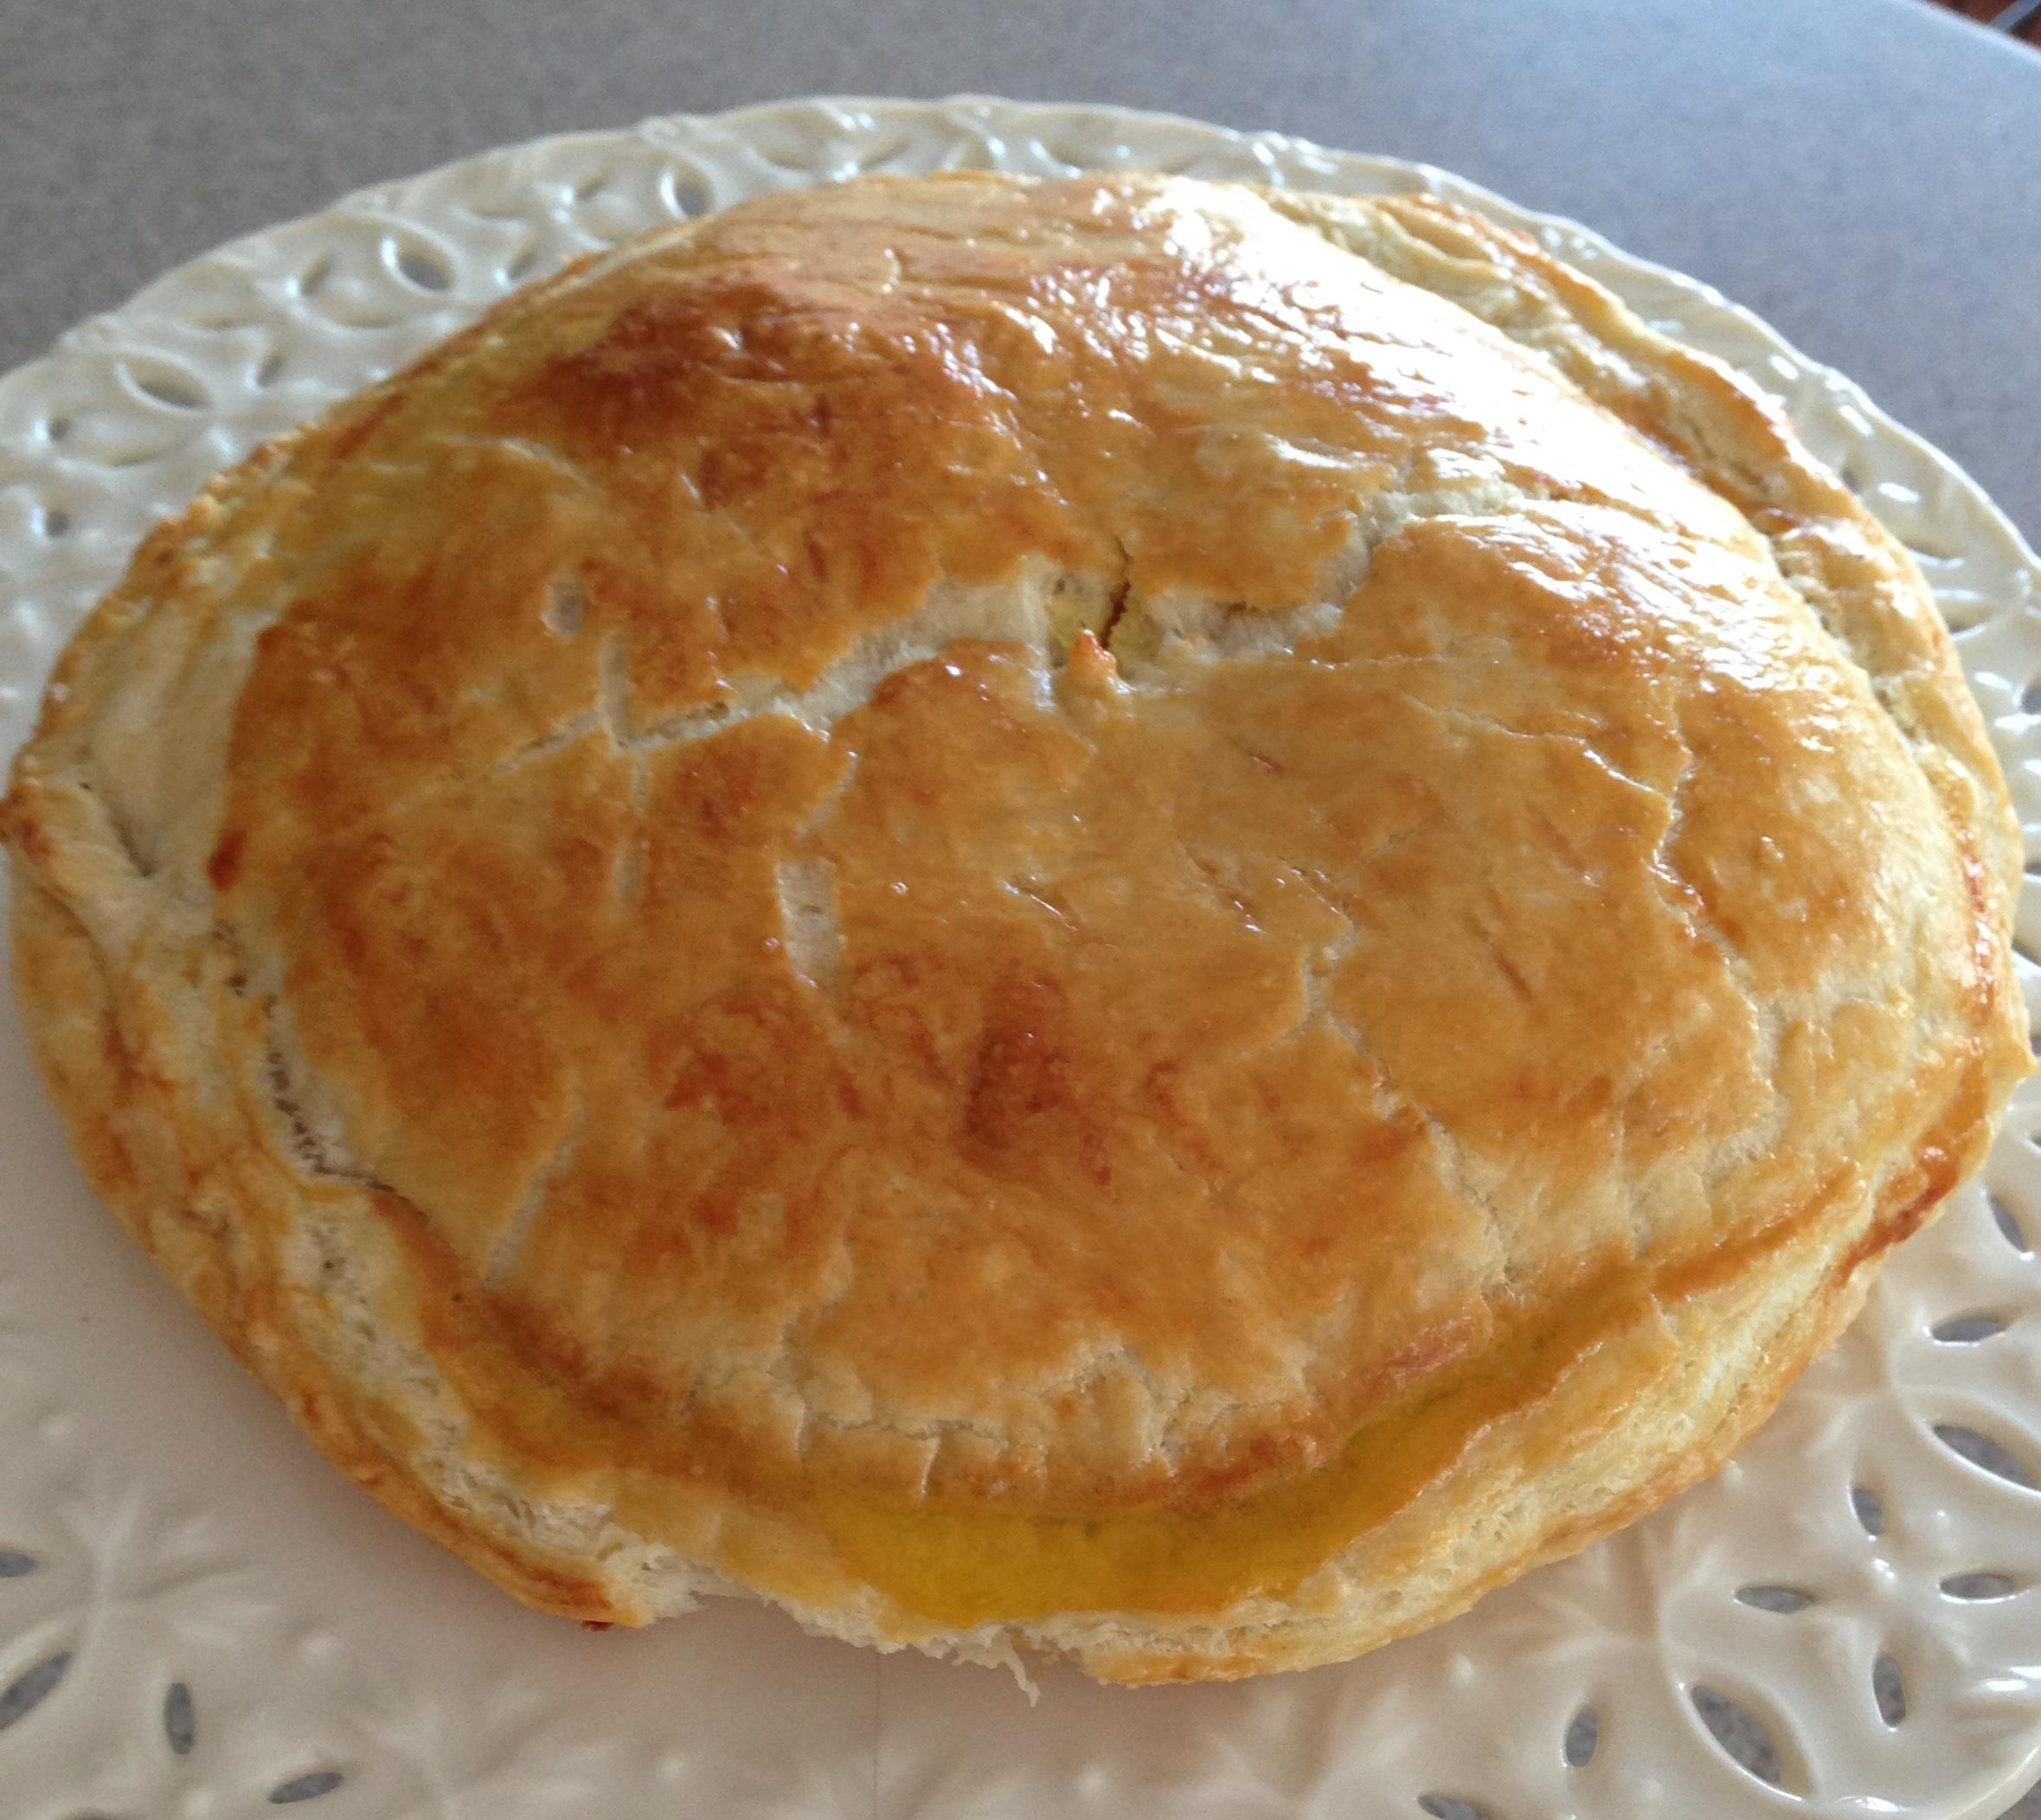 Fat tuesday and mourning the loss of a great girl singer - Deco galette des rois ...